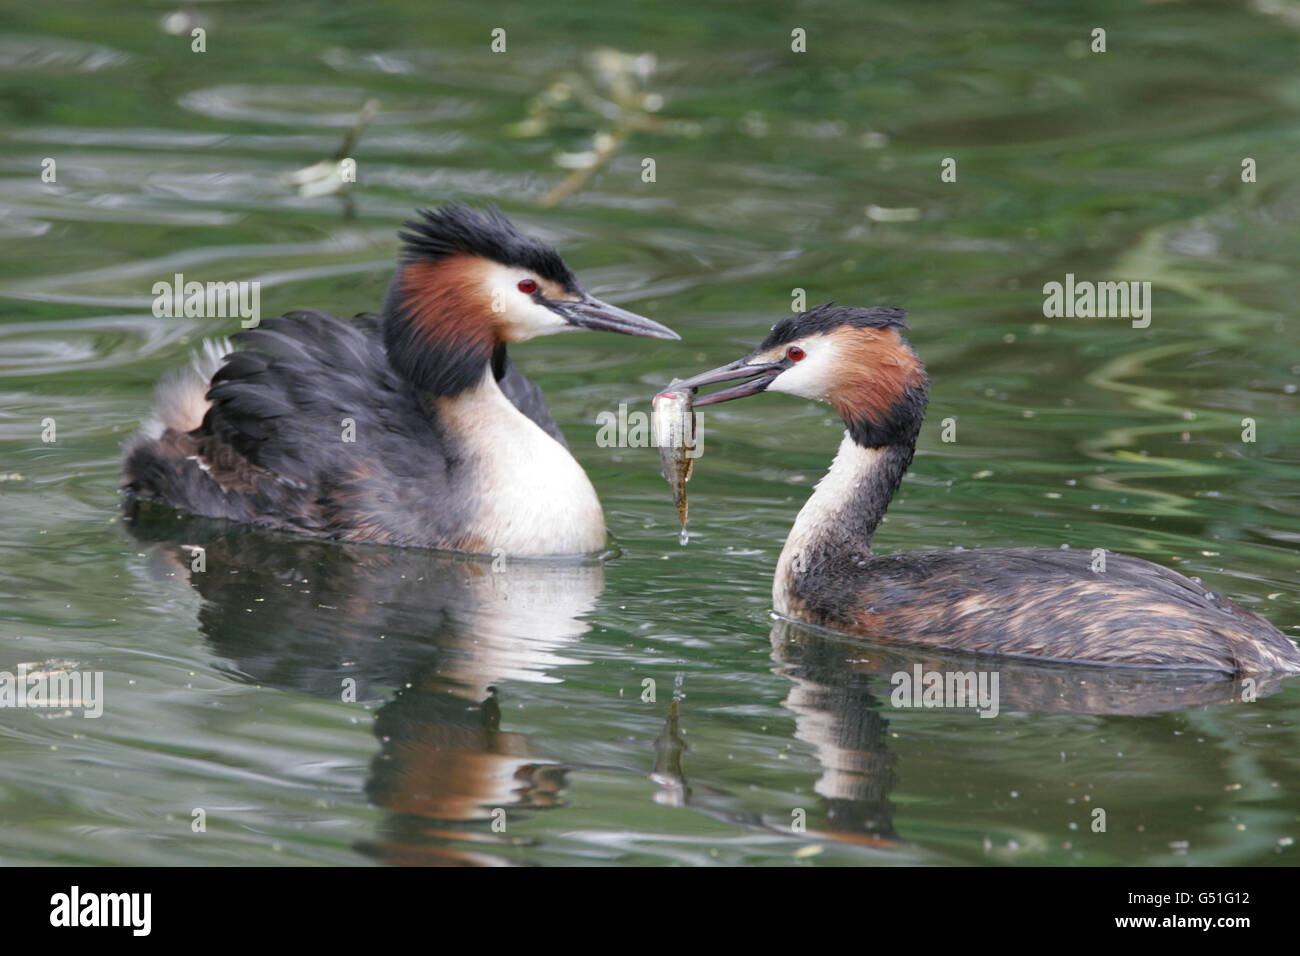 Great-crested Grebes, Podiceps cristatus, pair of adults with fish. Taken May. Lea Valley, Essex, UK. - Stock Image